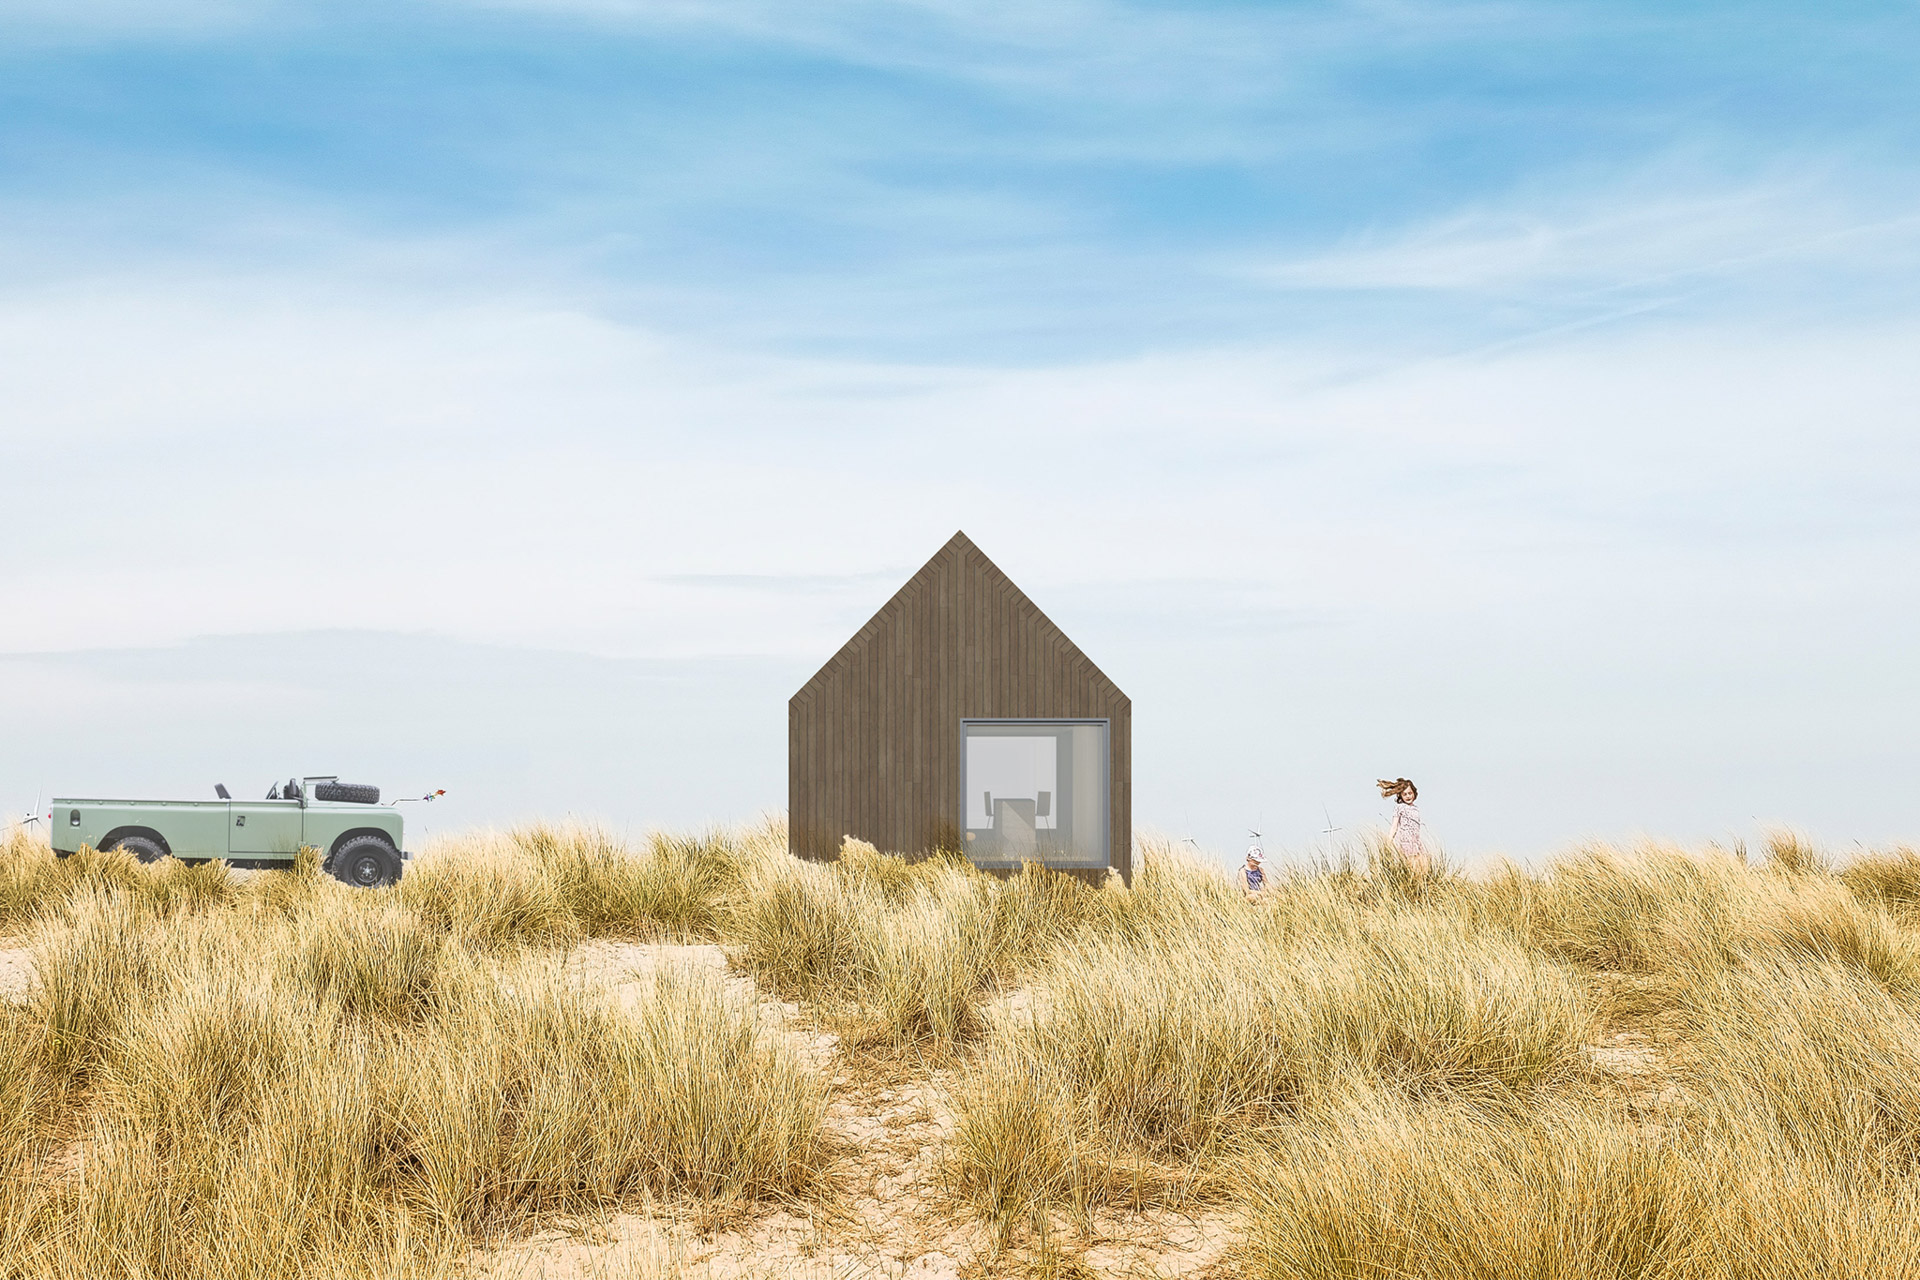 The Minimal Hut Collection